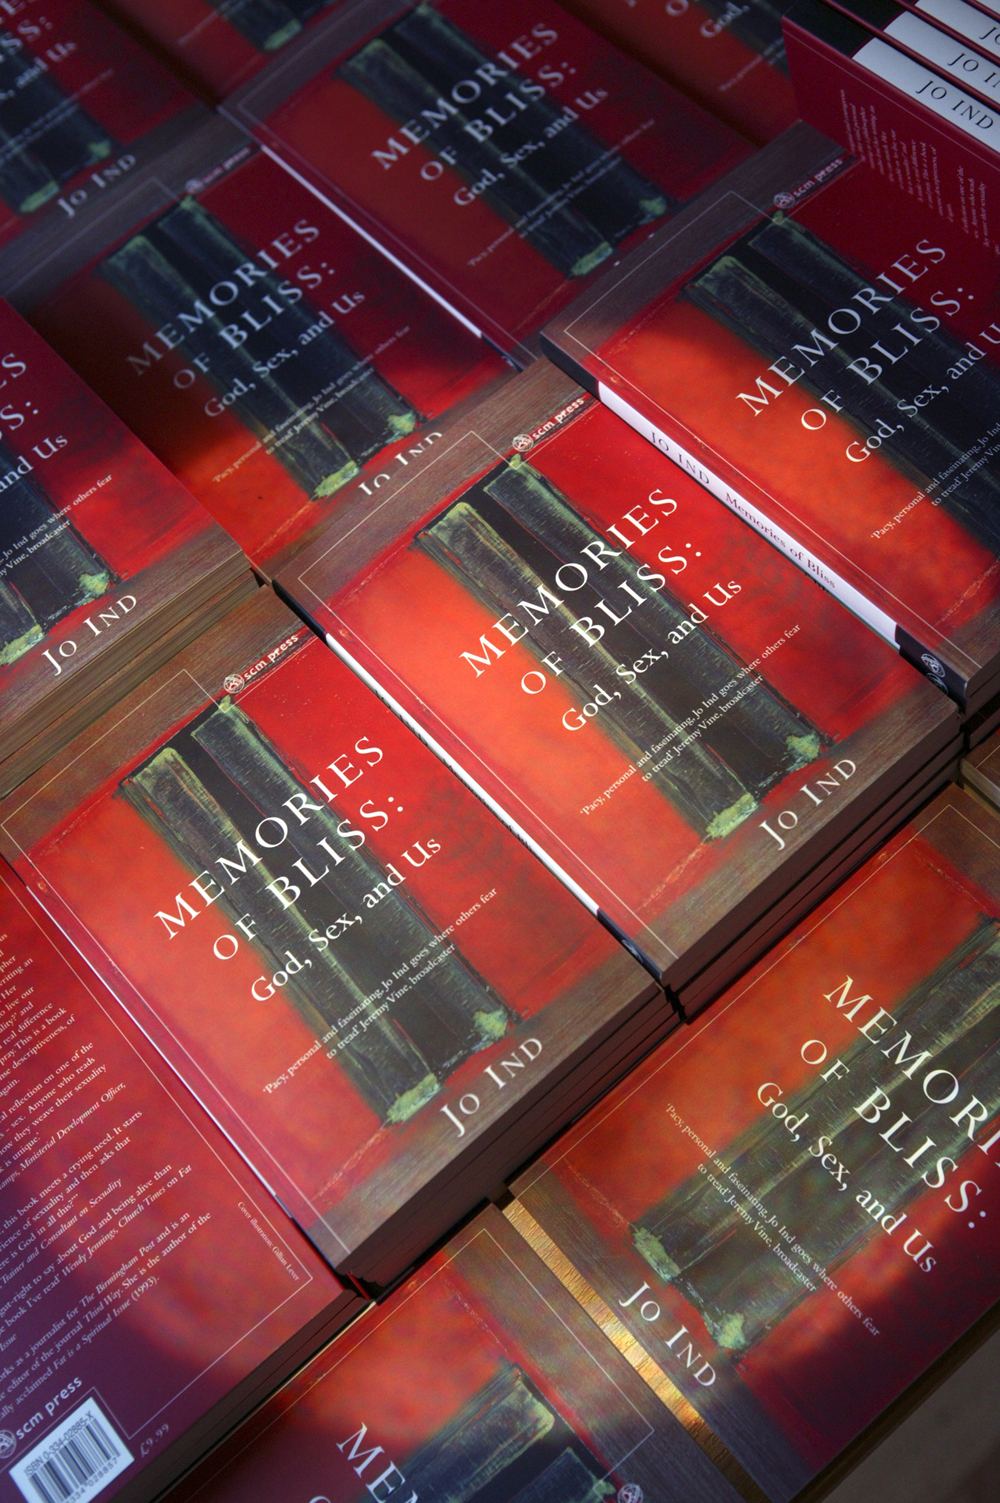 Lots of copies of the book Memories of Bliss on a table